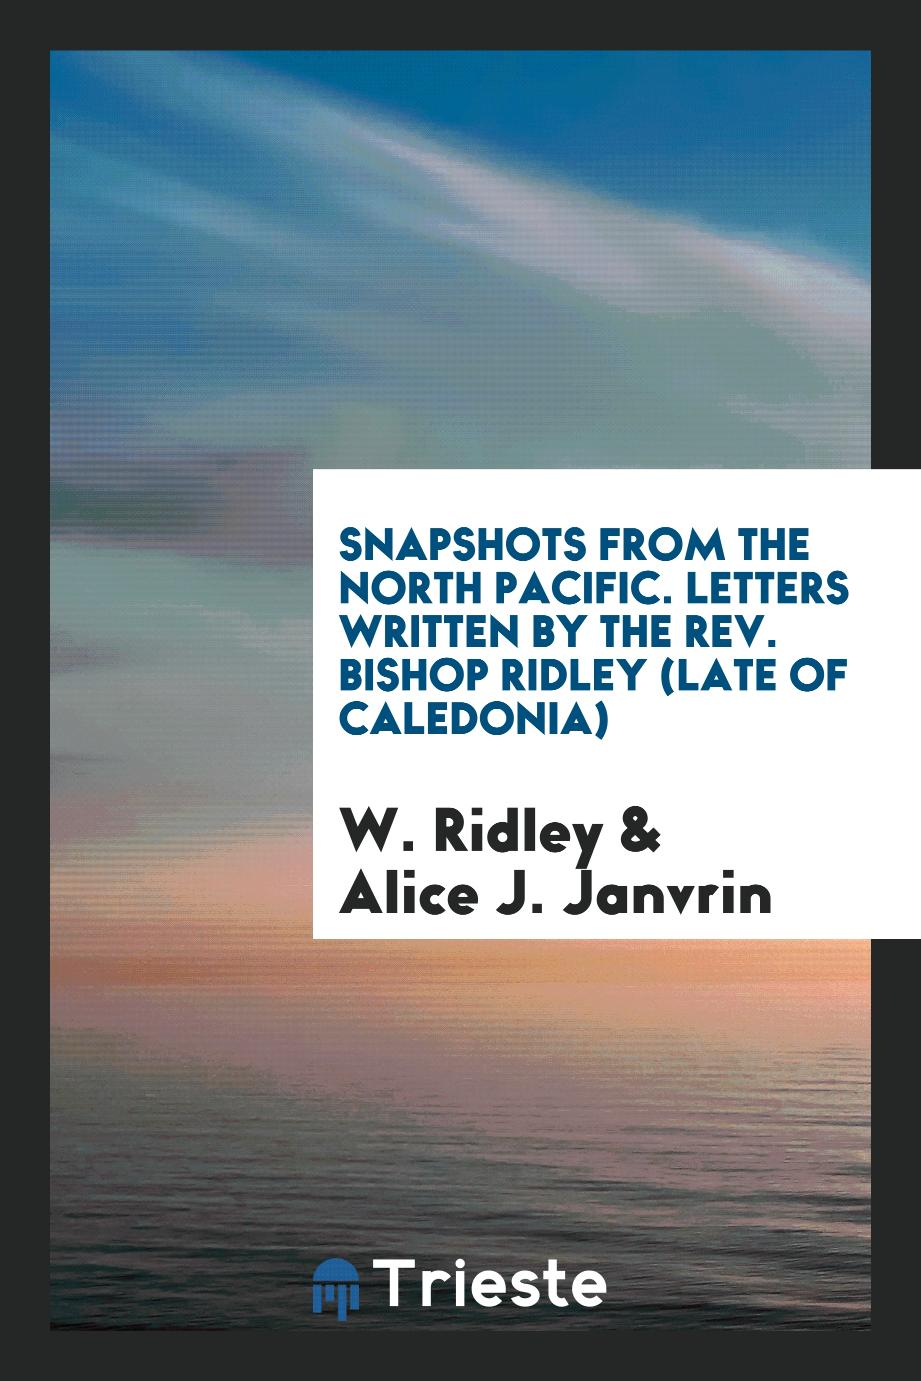 Snapshots from the North Pacific. Letters Written by the Rev. Bishop Ridley (Late of Caledonia)